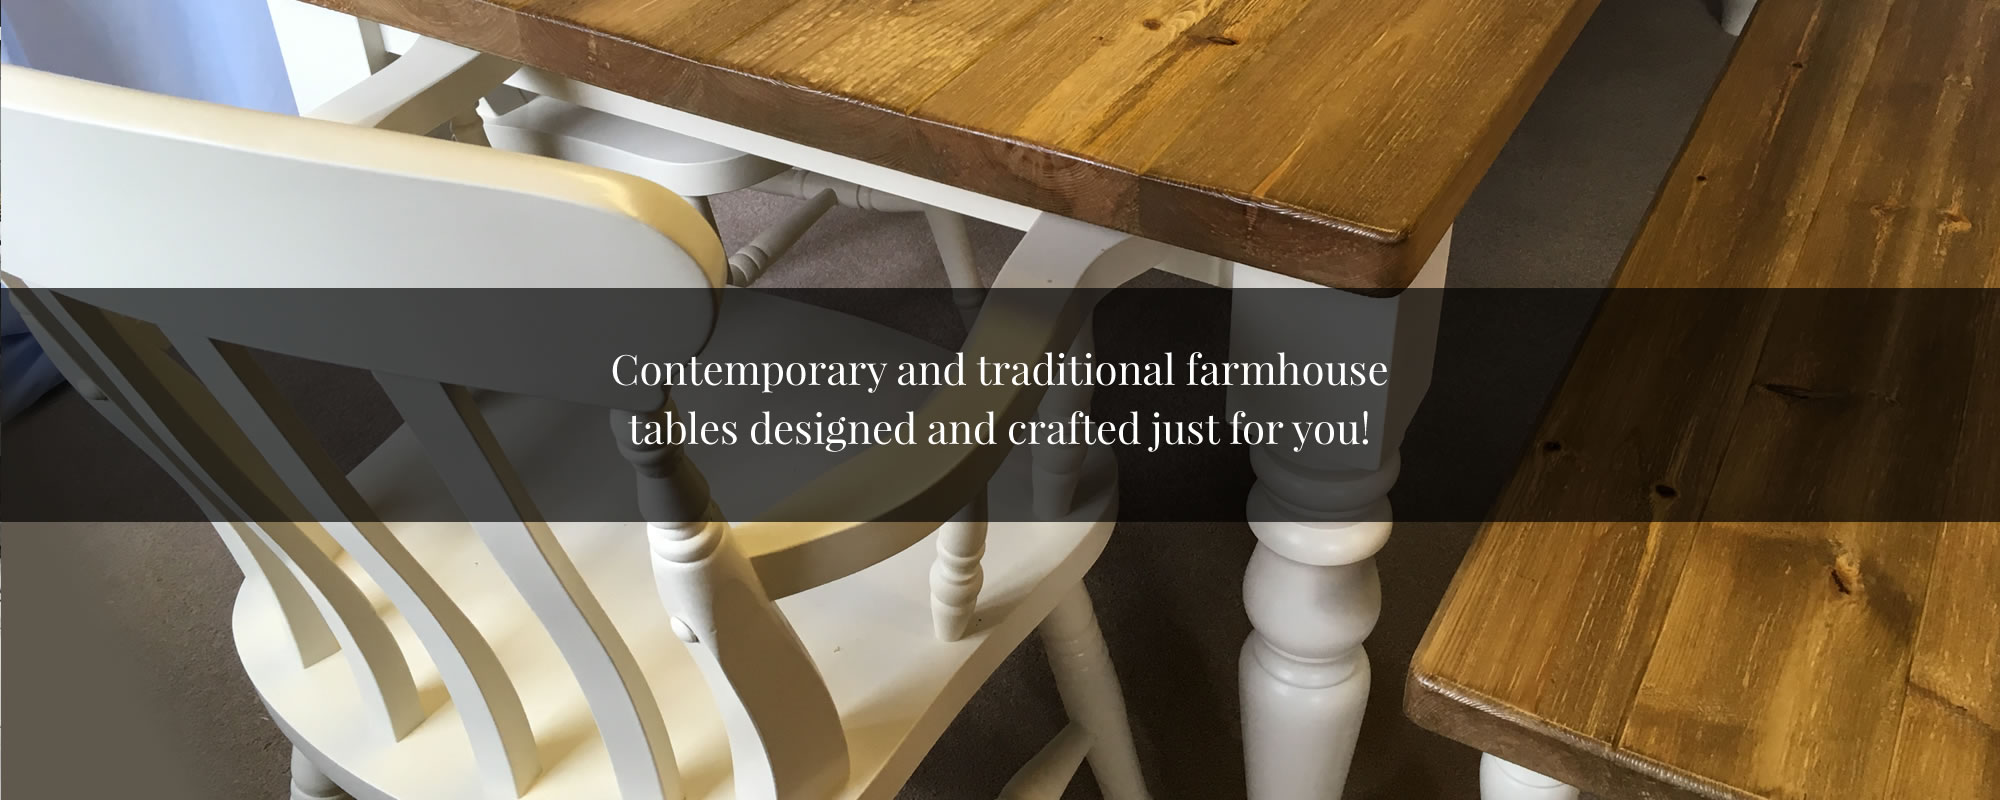 Contemporary and traditional farmhouse tables designed and crafted just for you!